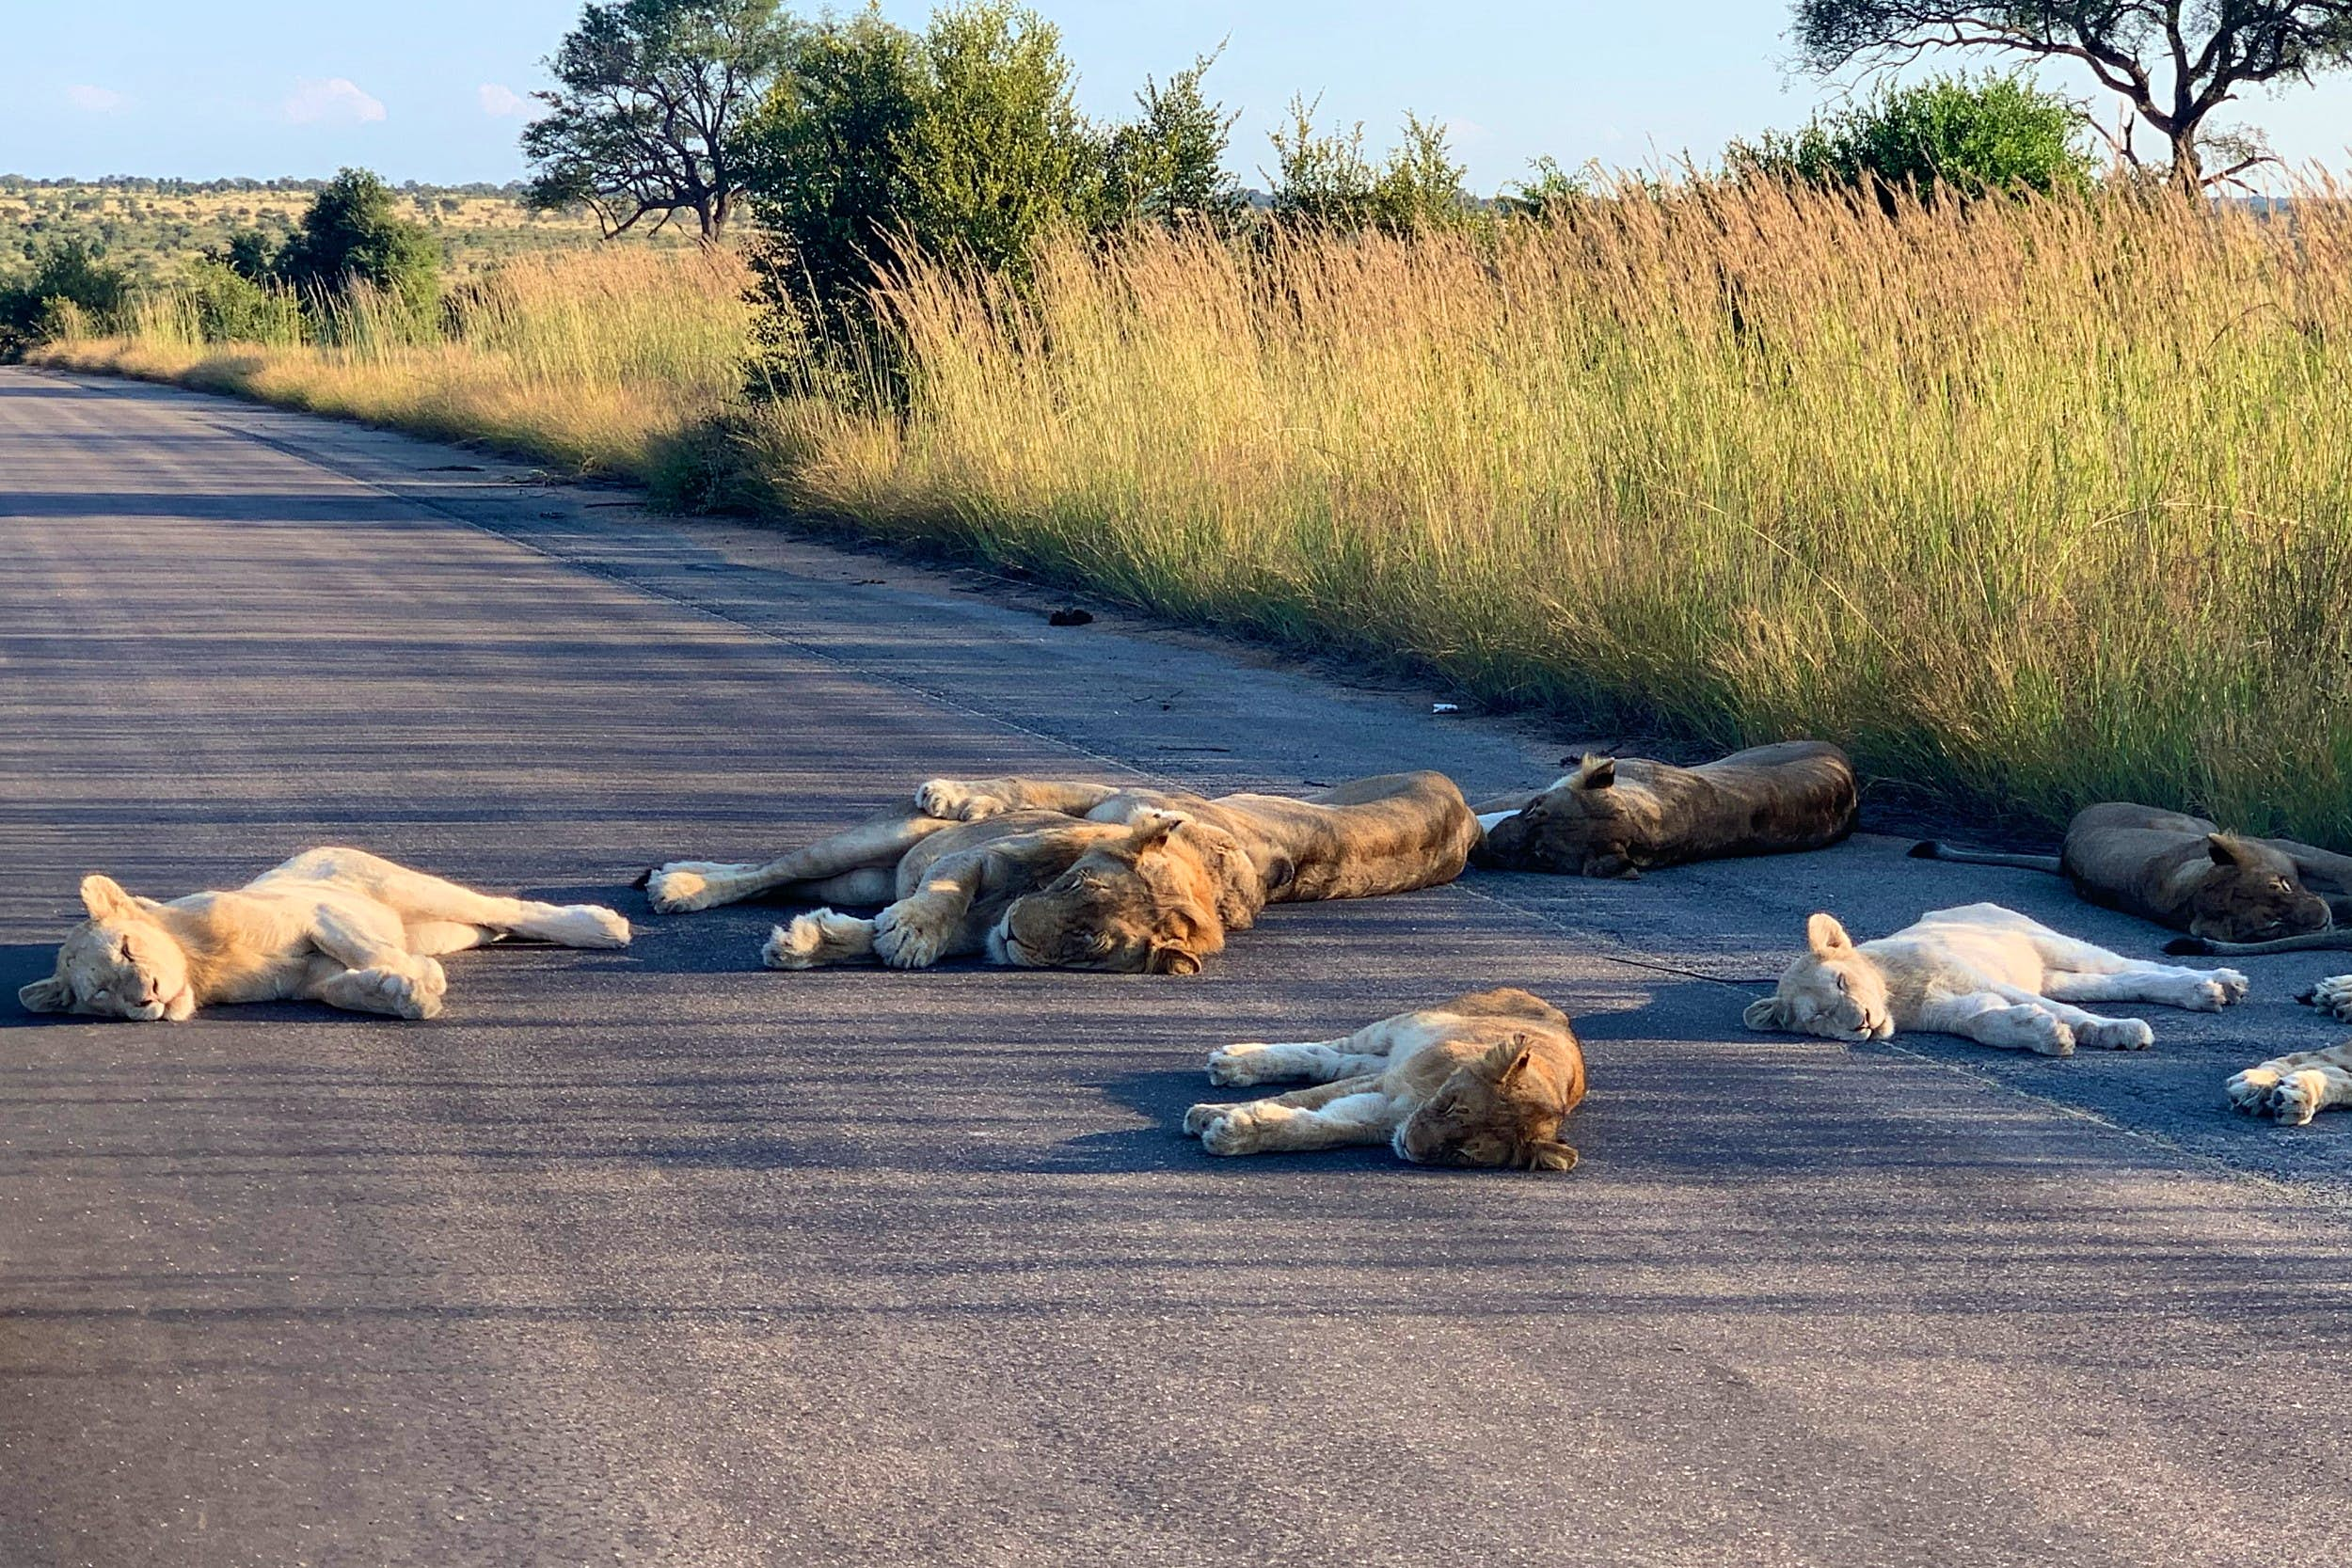 Kruger lions lying on the road